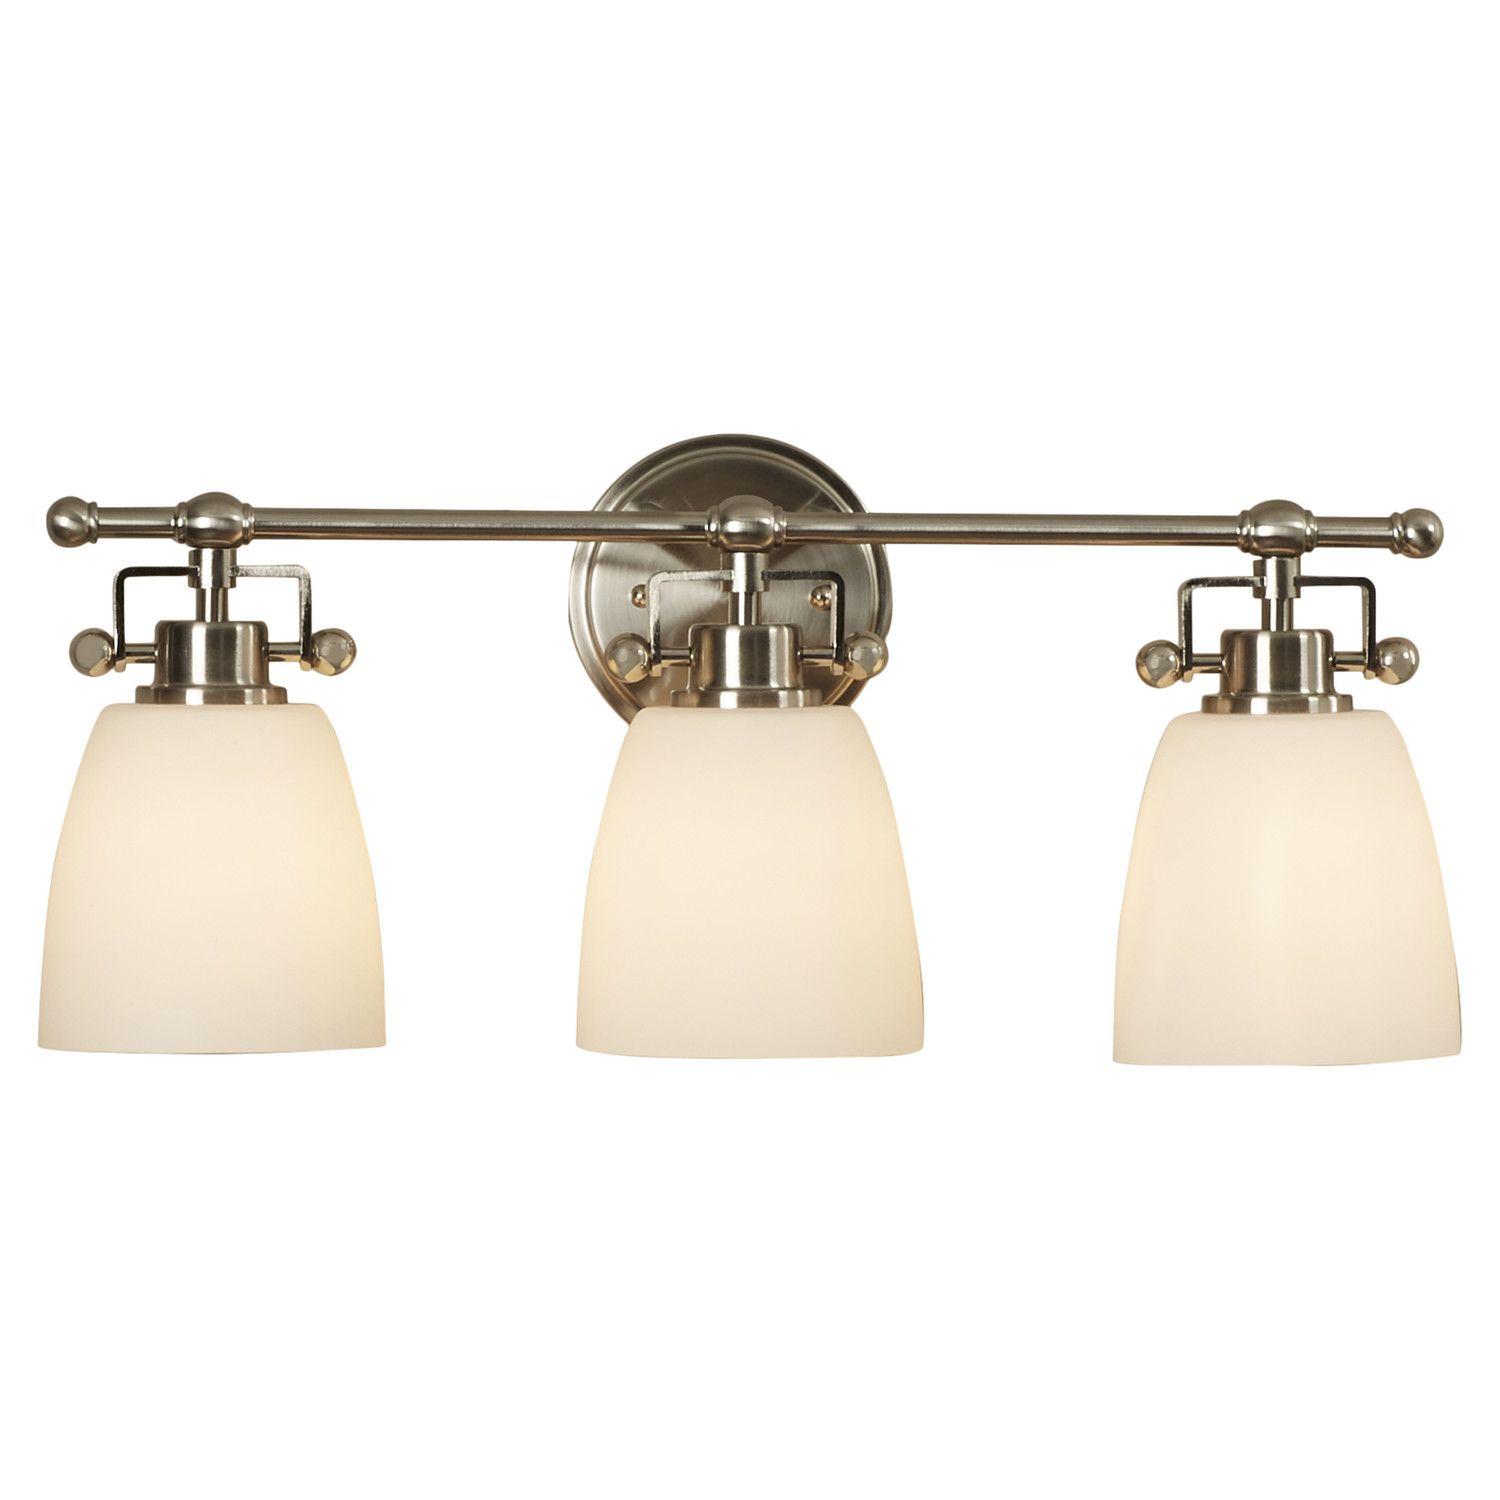 Quoizel bwr8603 bower 3 light 22 wide reversible bathroom vanity light with opa brushed nickel indoor lighting bathroom fixtures vanity li